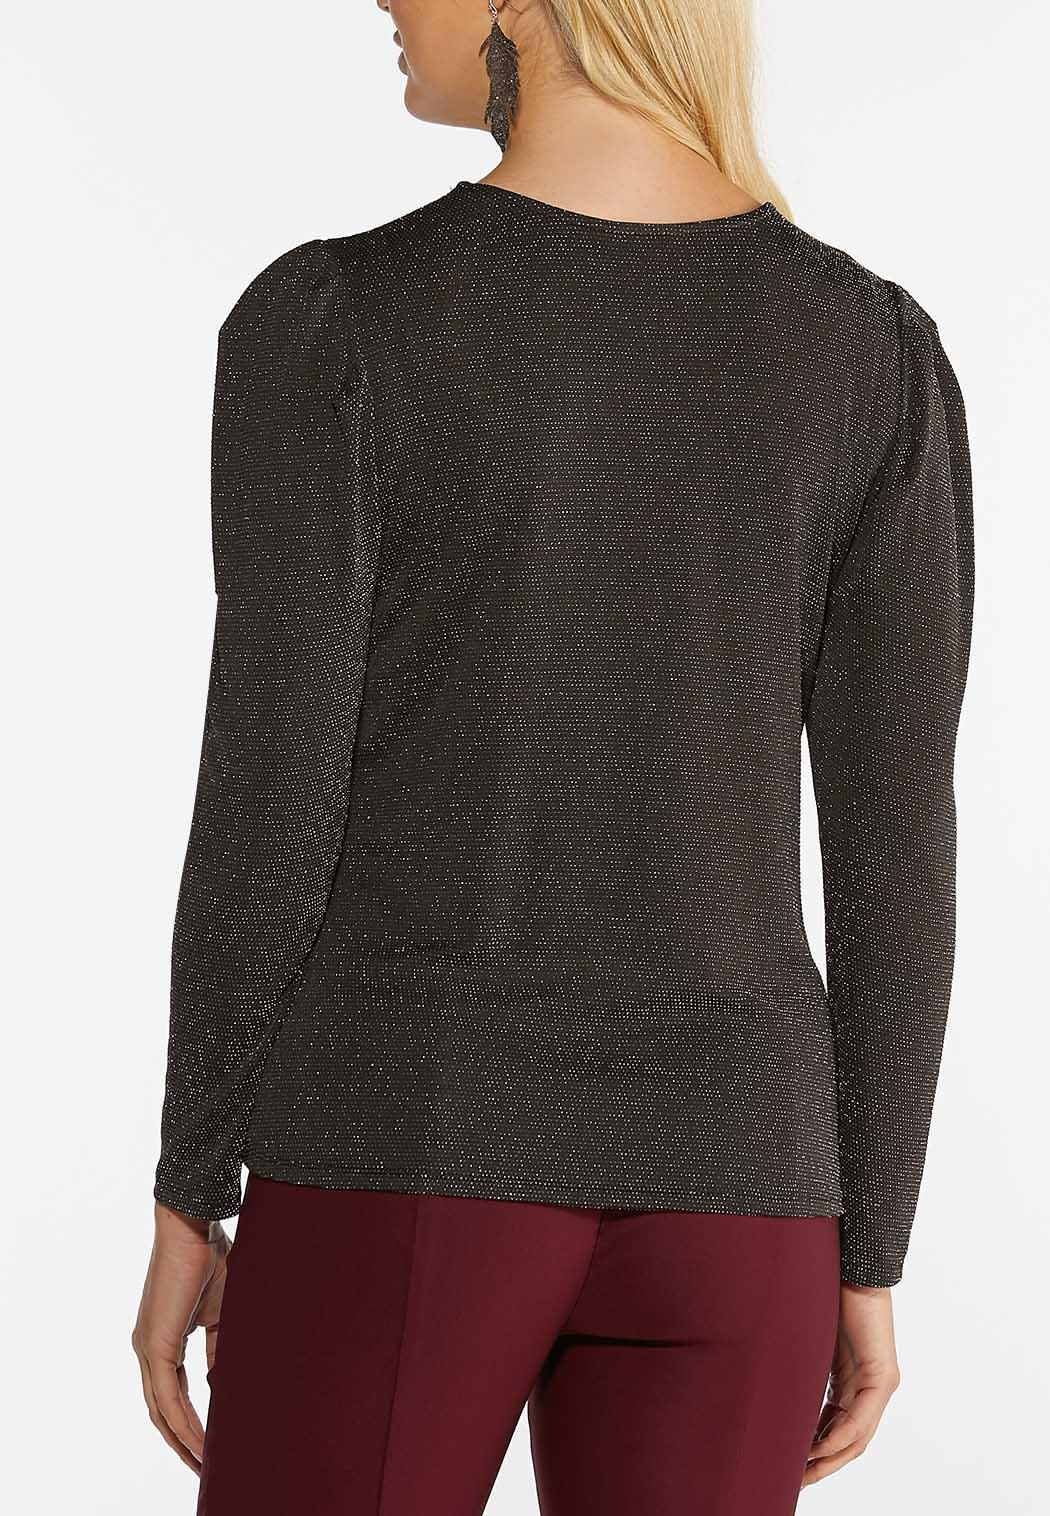 Shimmer Puff Sleeve Top (Item #44396476)